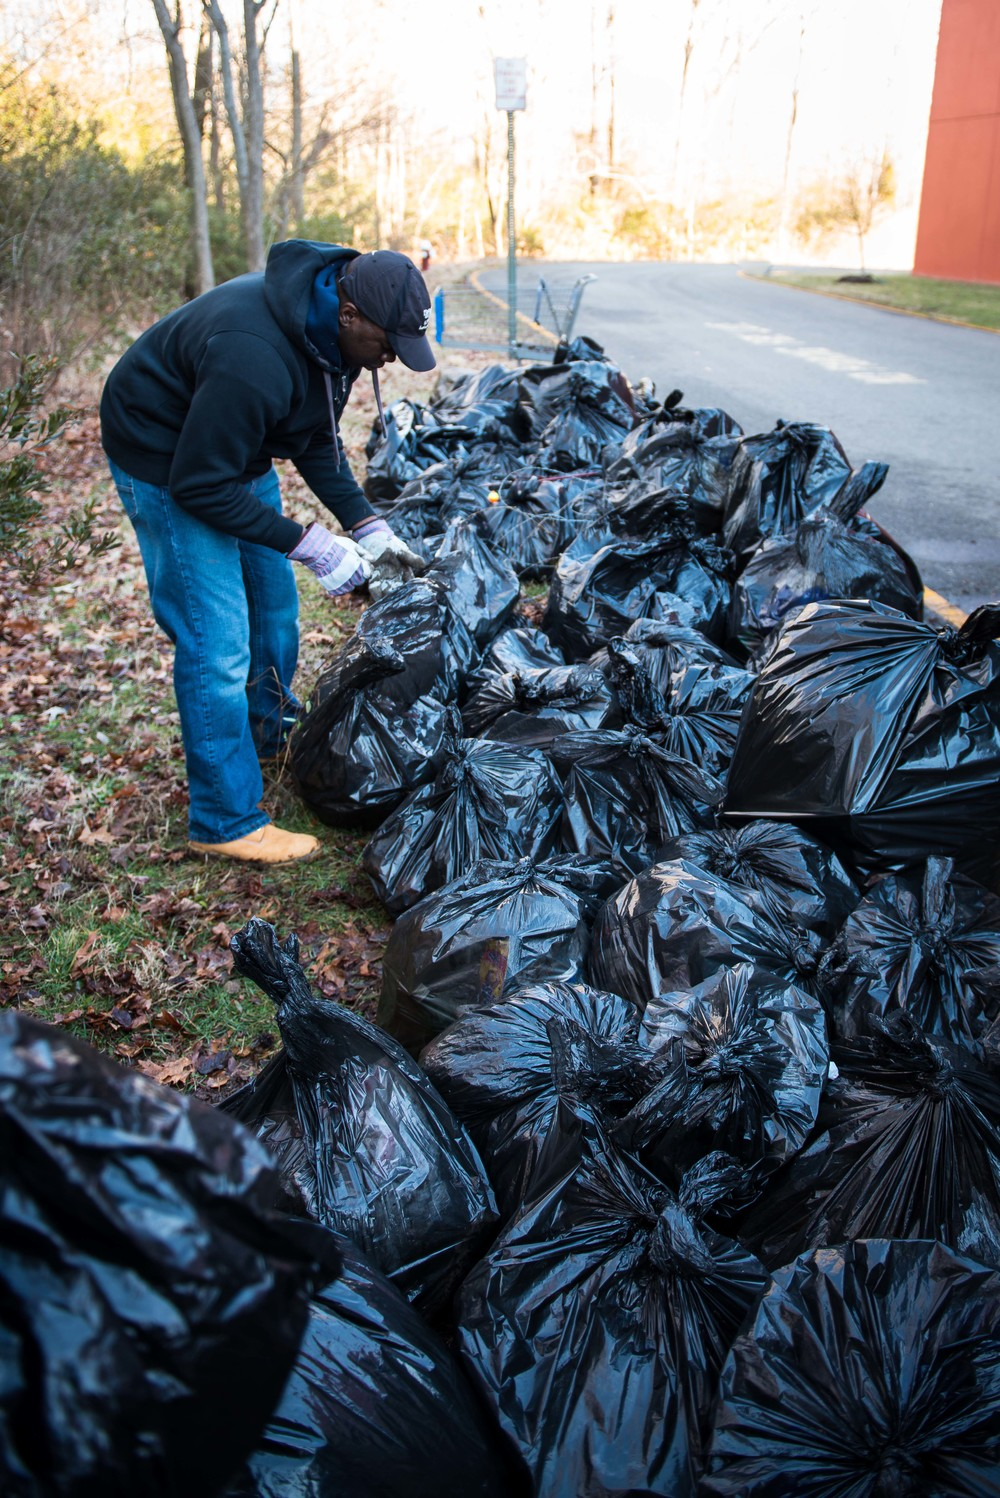 AT1 Hunter gather pounds of trash bag filled by what sailor found in the park.